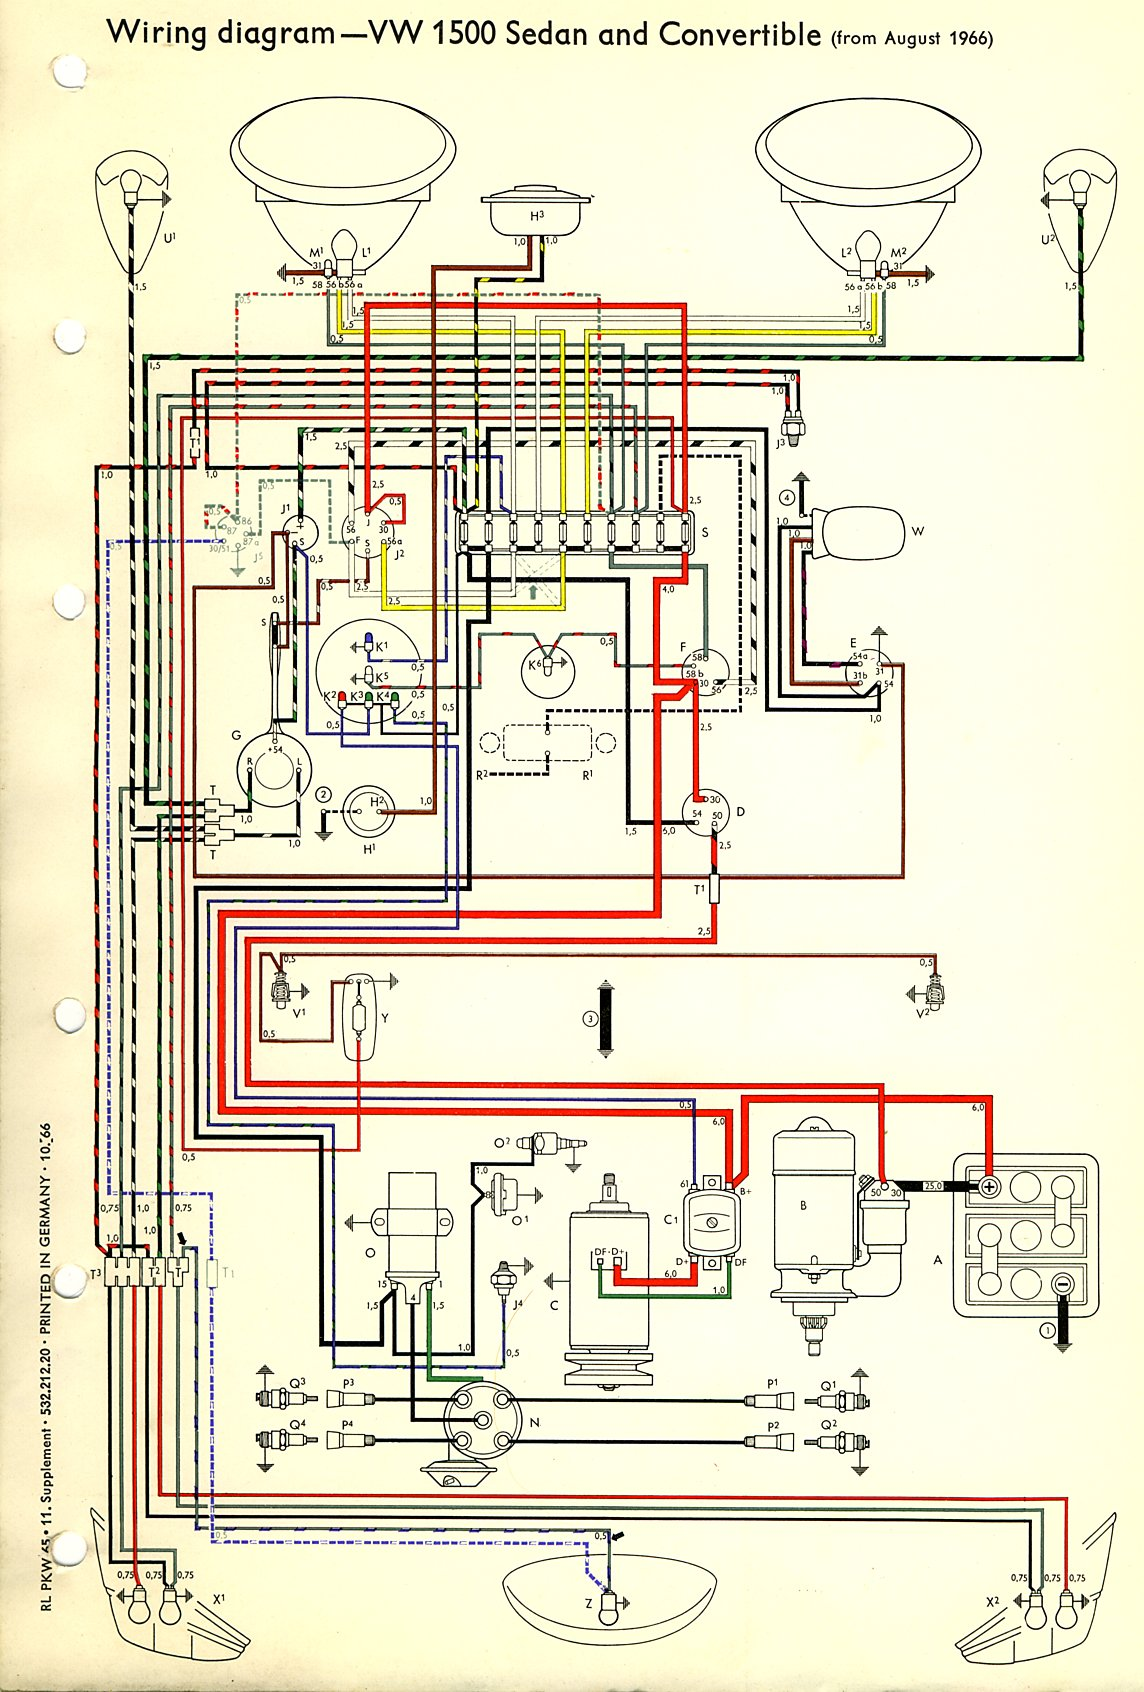 1967 beetle wiring diagram thegoldenbug com VW Beetle Generator Wiring Diagram 1967 beetle wiring diagram